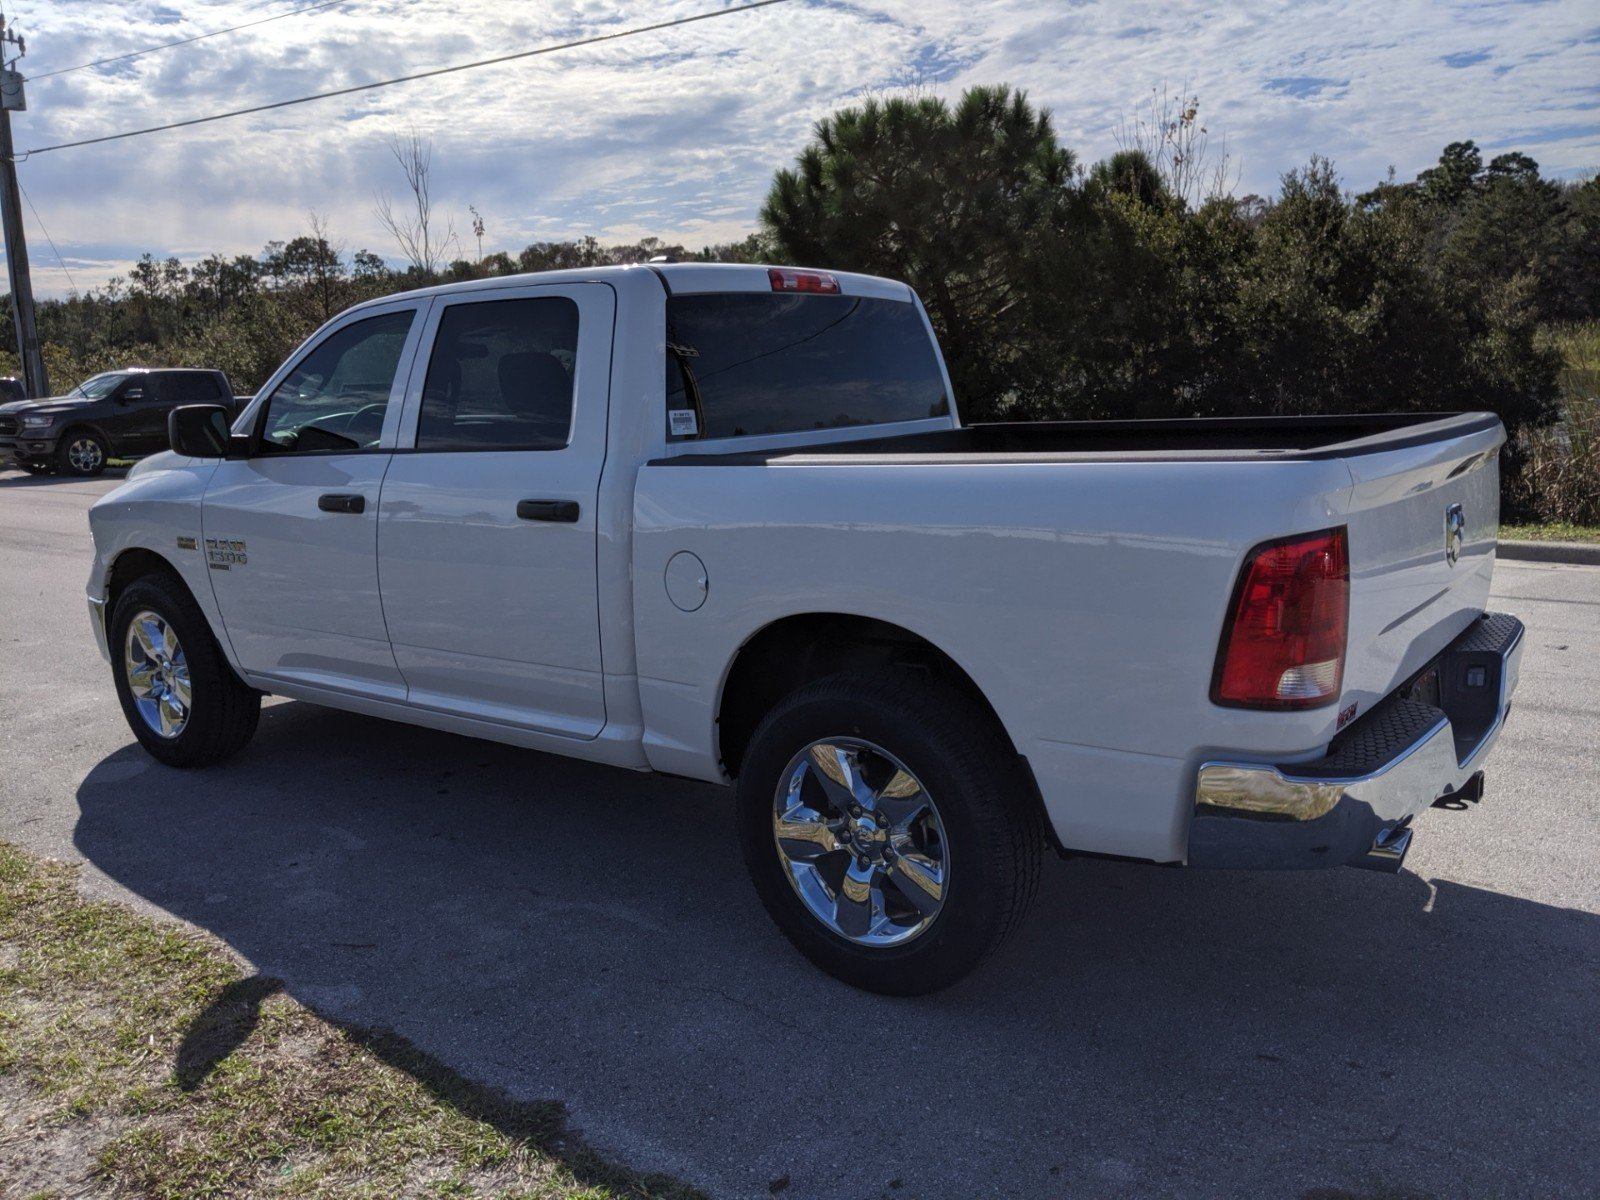 2019 Ram 1500 Crew Cab 4x2, Pickup #R19897 - photo 1